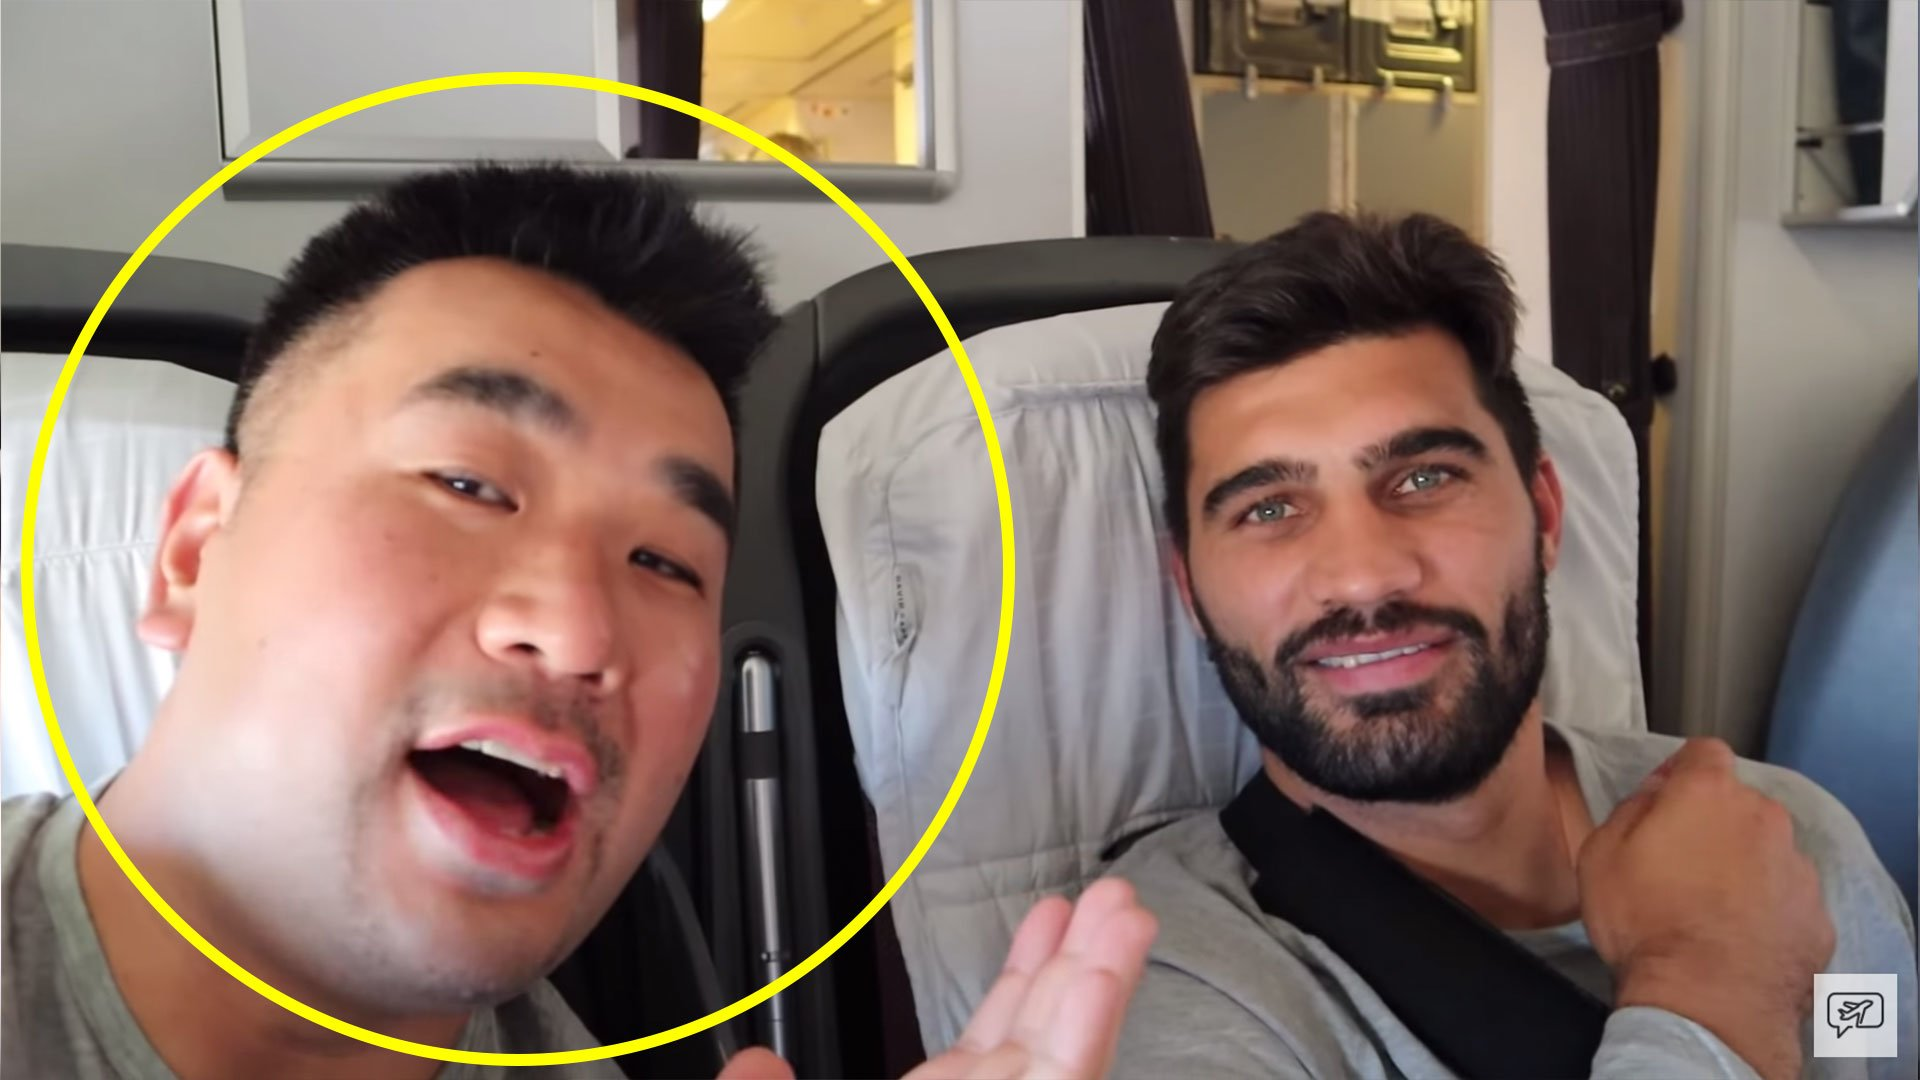 Famous vlogger has no idea how who or how famous Springbok team is when he sees them on plane